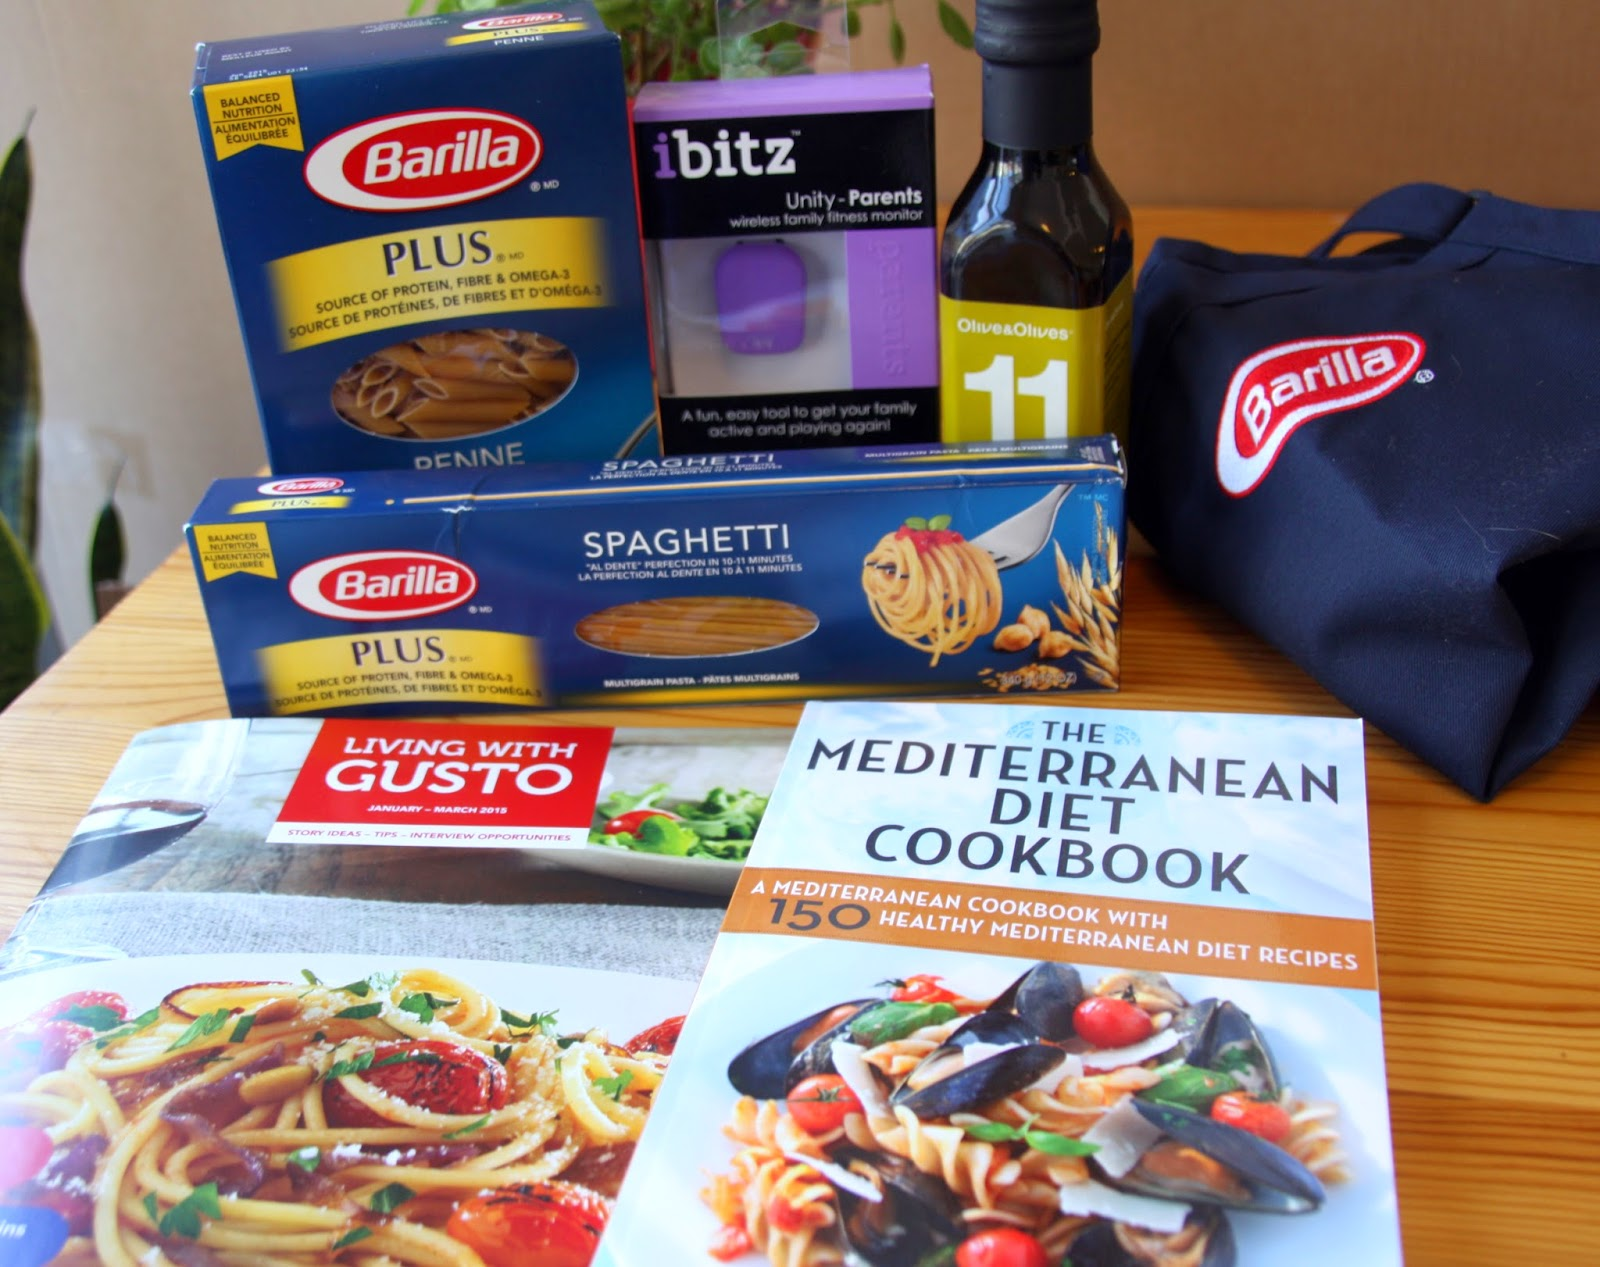 Barilla products